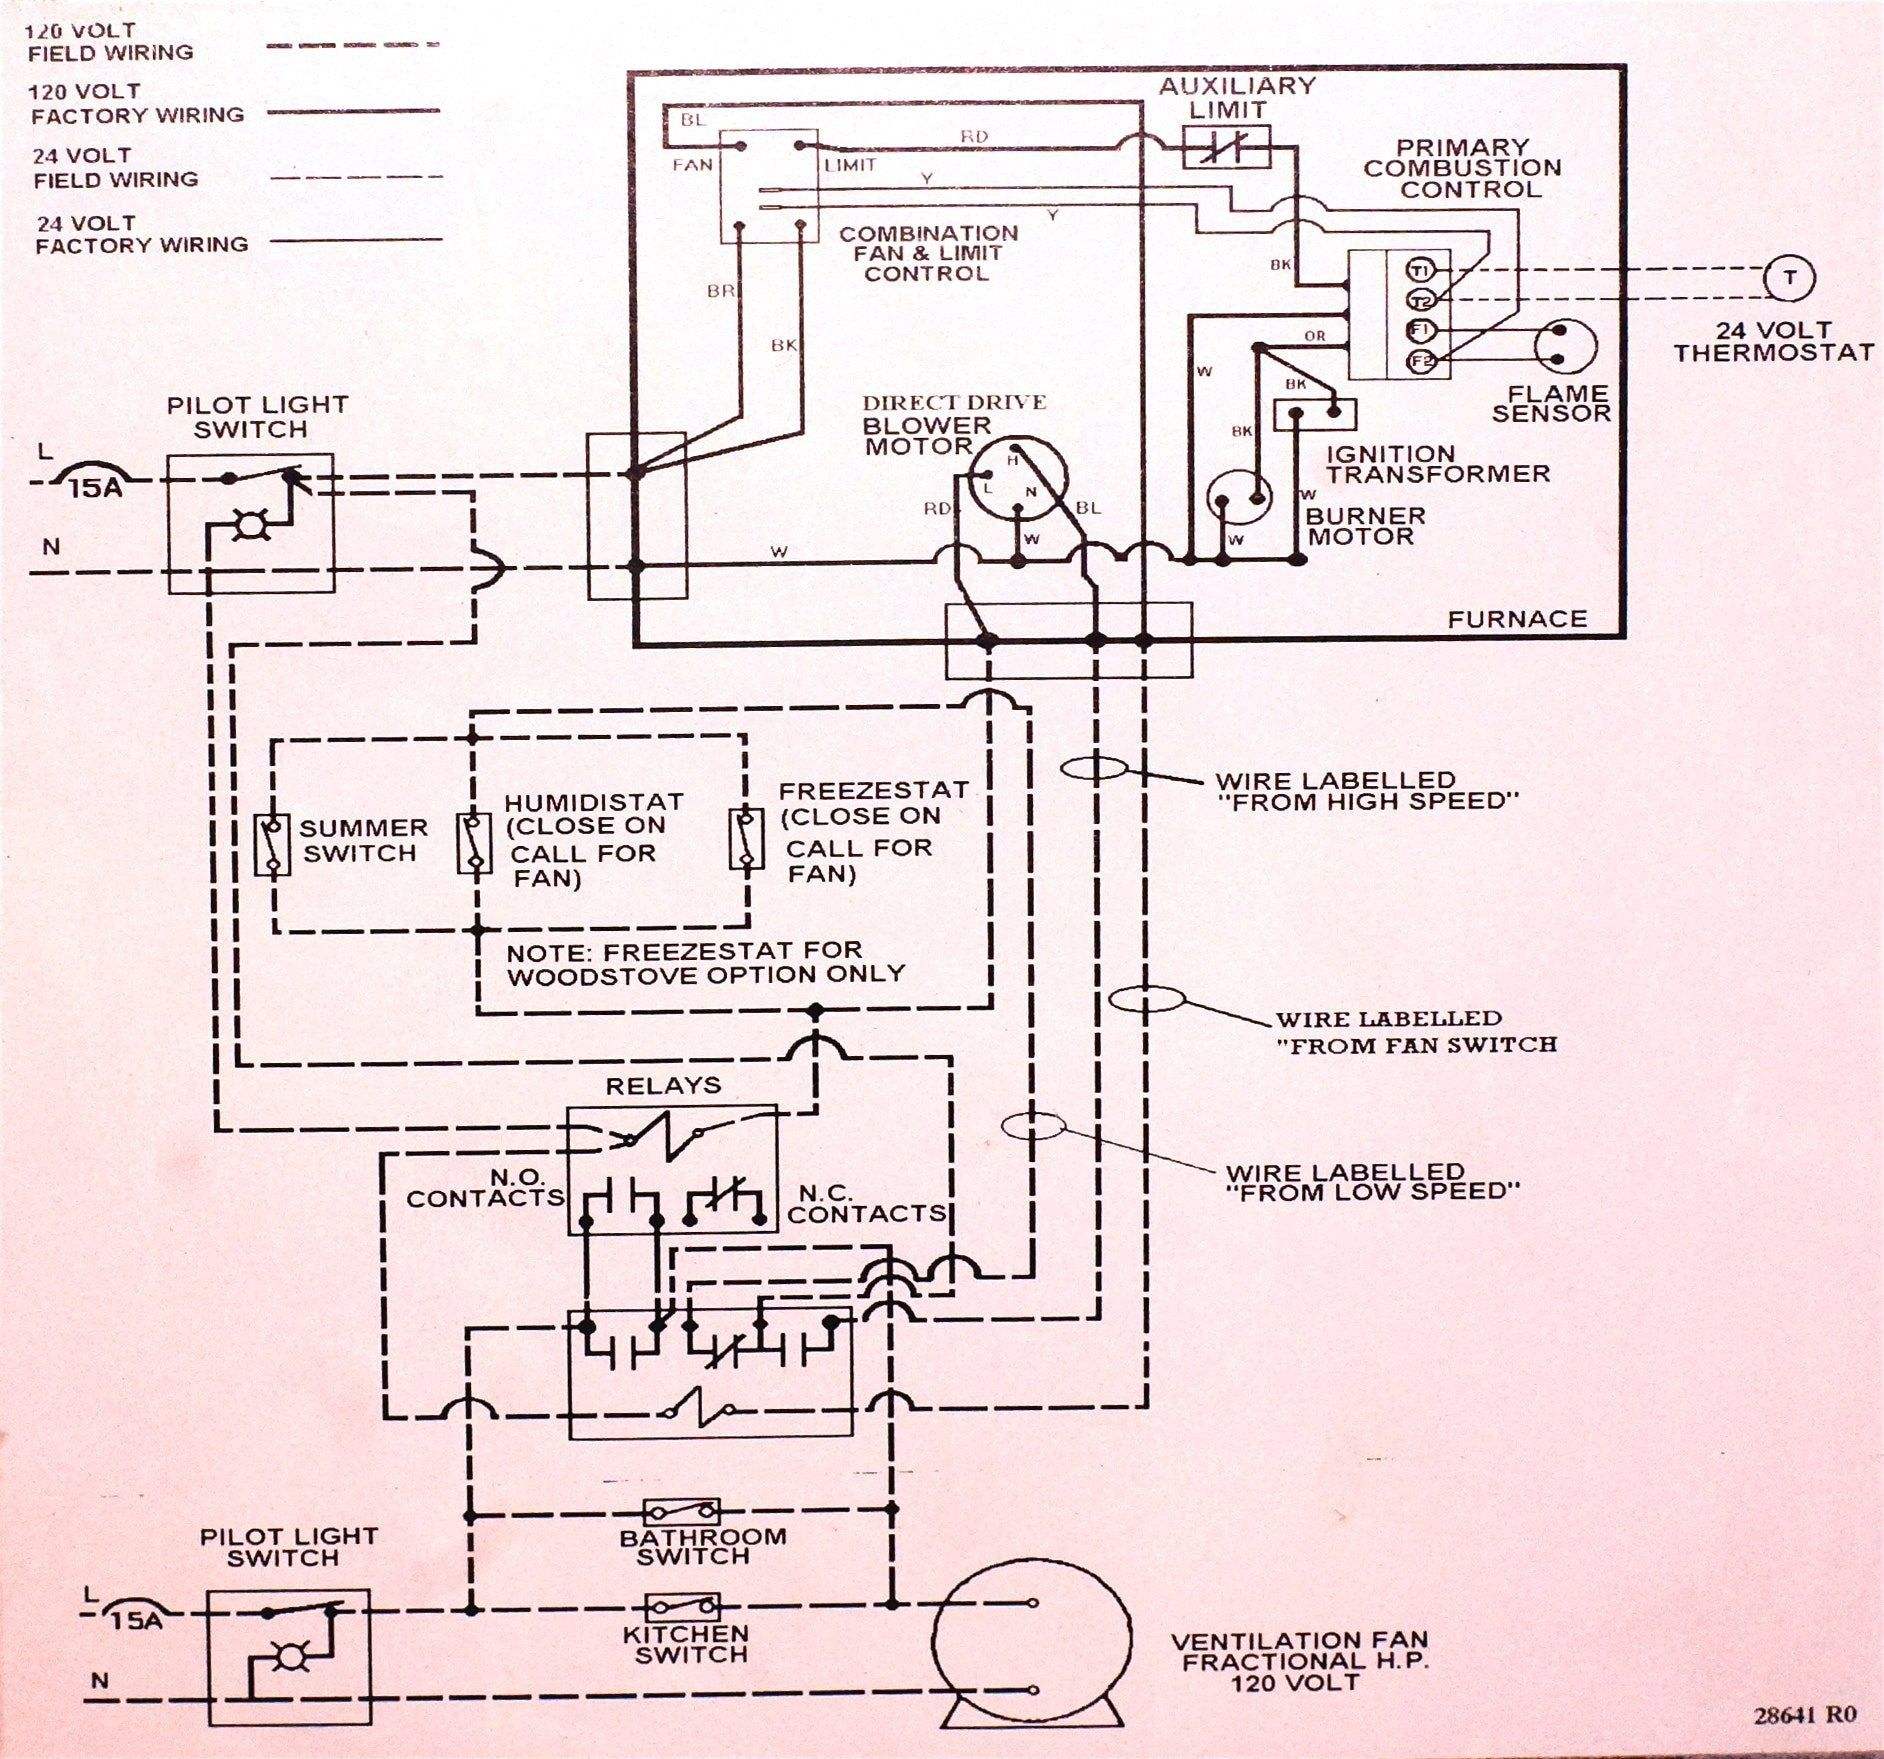 New Wiring Diagram for Ac thermostat diagramsample